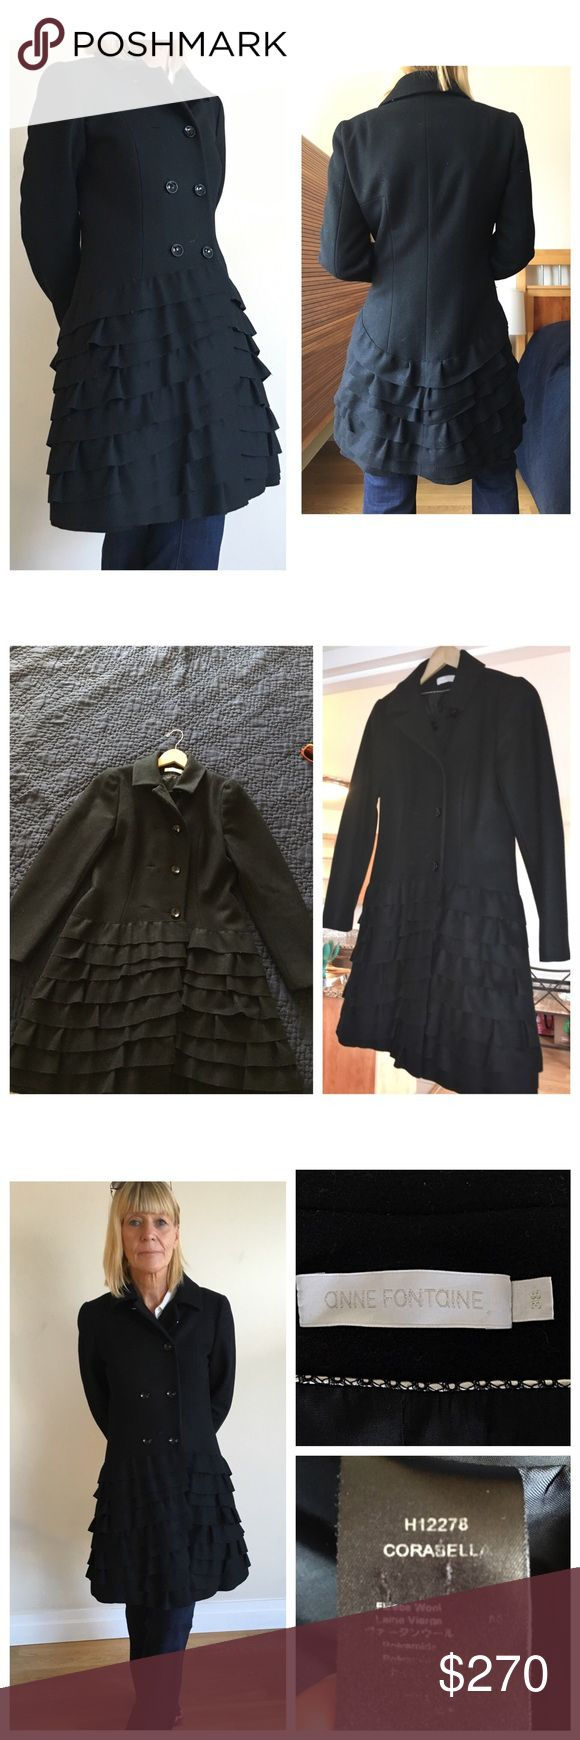 Anne Fontaine Black Wool Coat Remarkable Anne Fontaine 100% Wool coat - MINT Condition- It's a SMALL Size 38 European size; meaning a size 8. It runs small though. It fits me, and I'm a size 2-4. *Offers Welcomed* Anne Fontaine Jackets & Coats